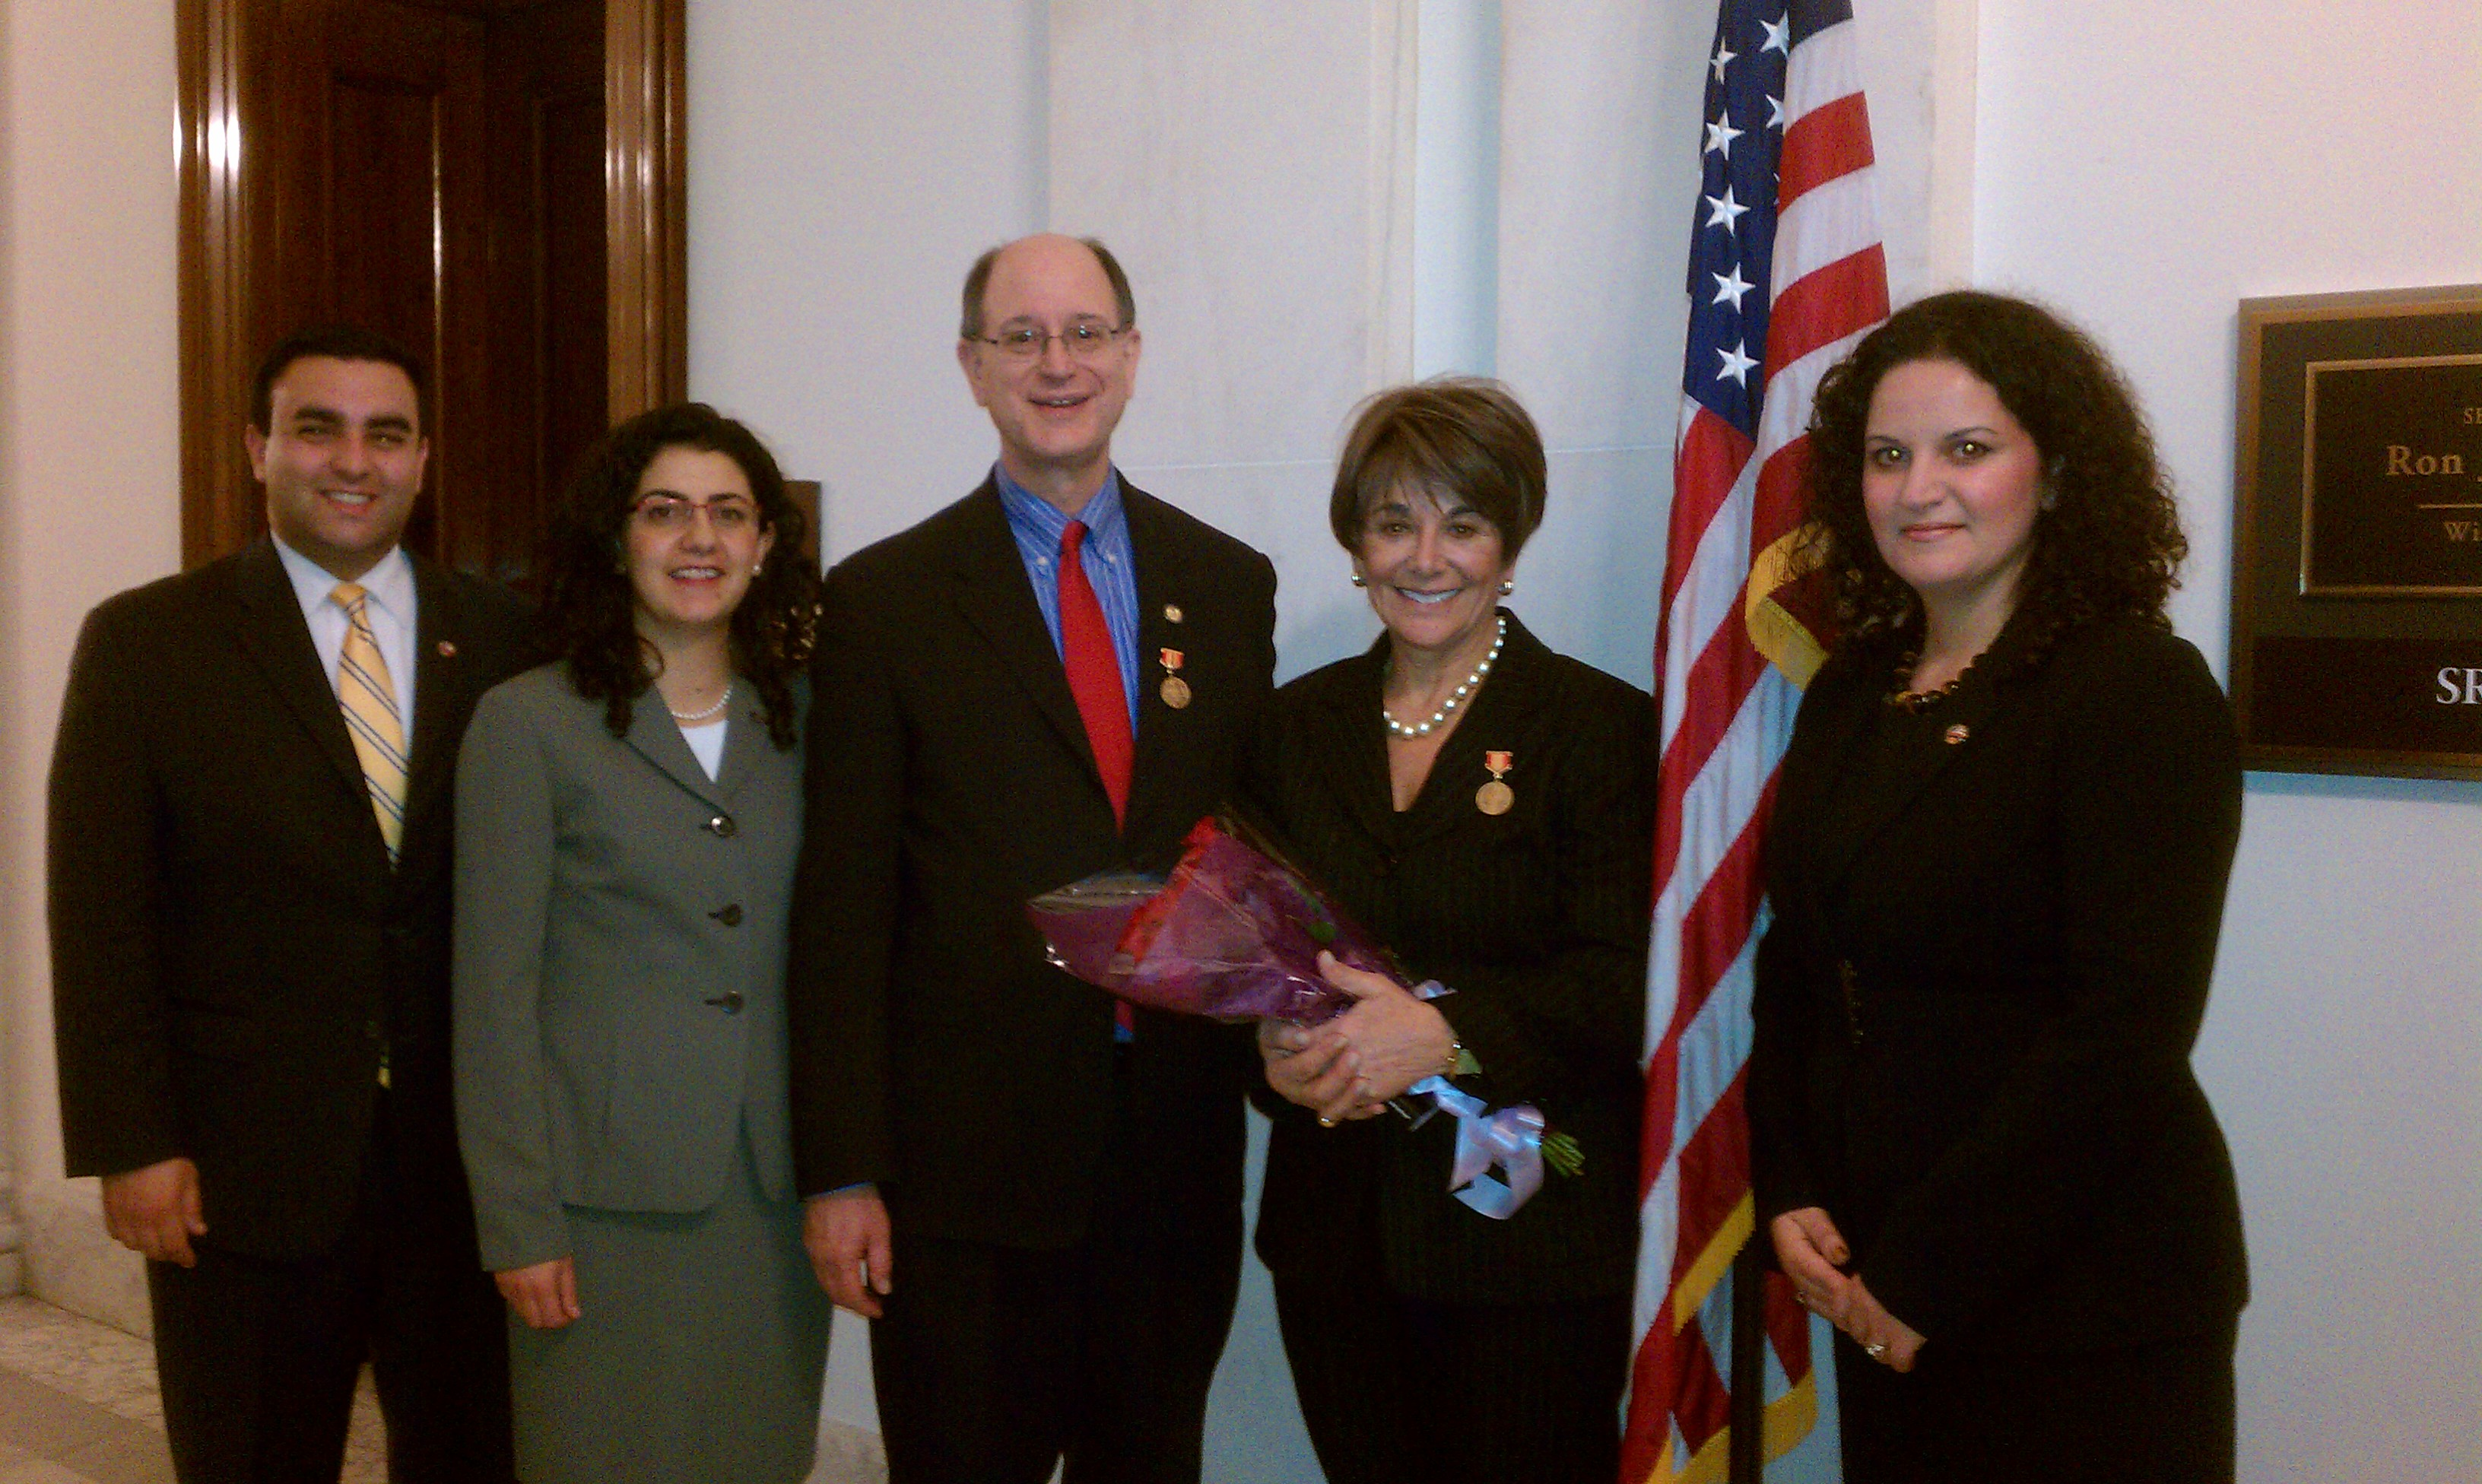 Members of UScongress with ANCA reps NKR celebrations inWashington